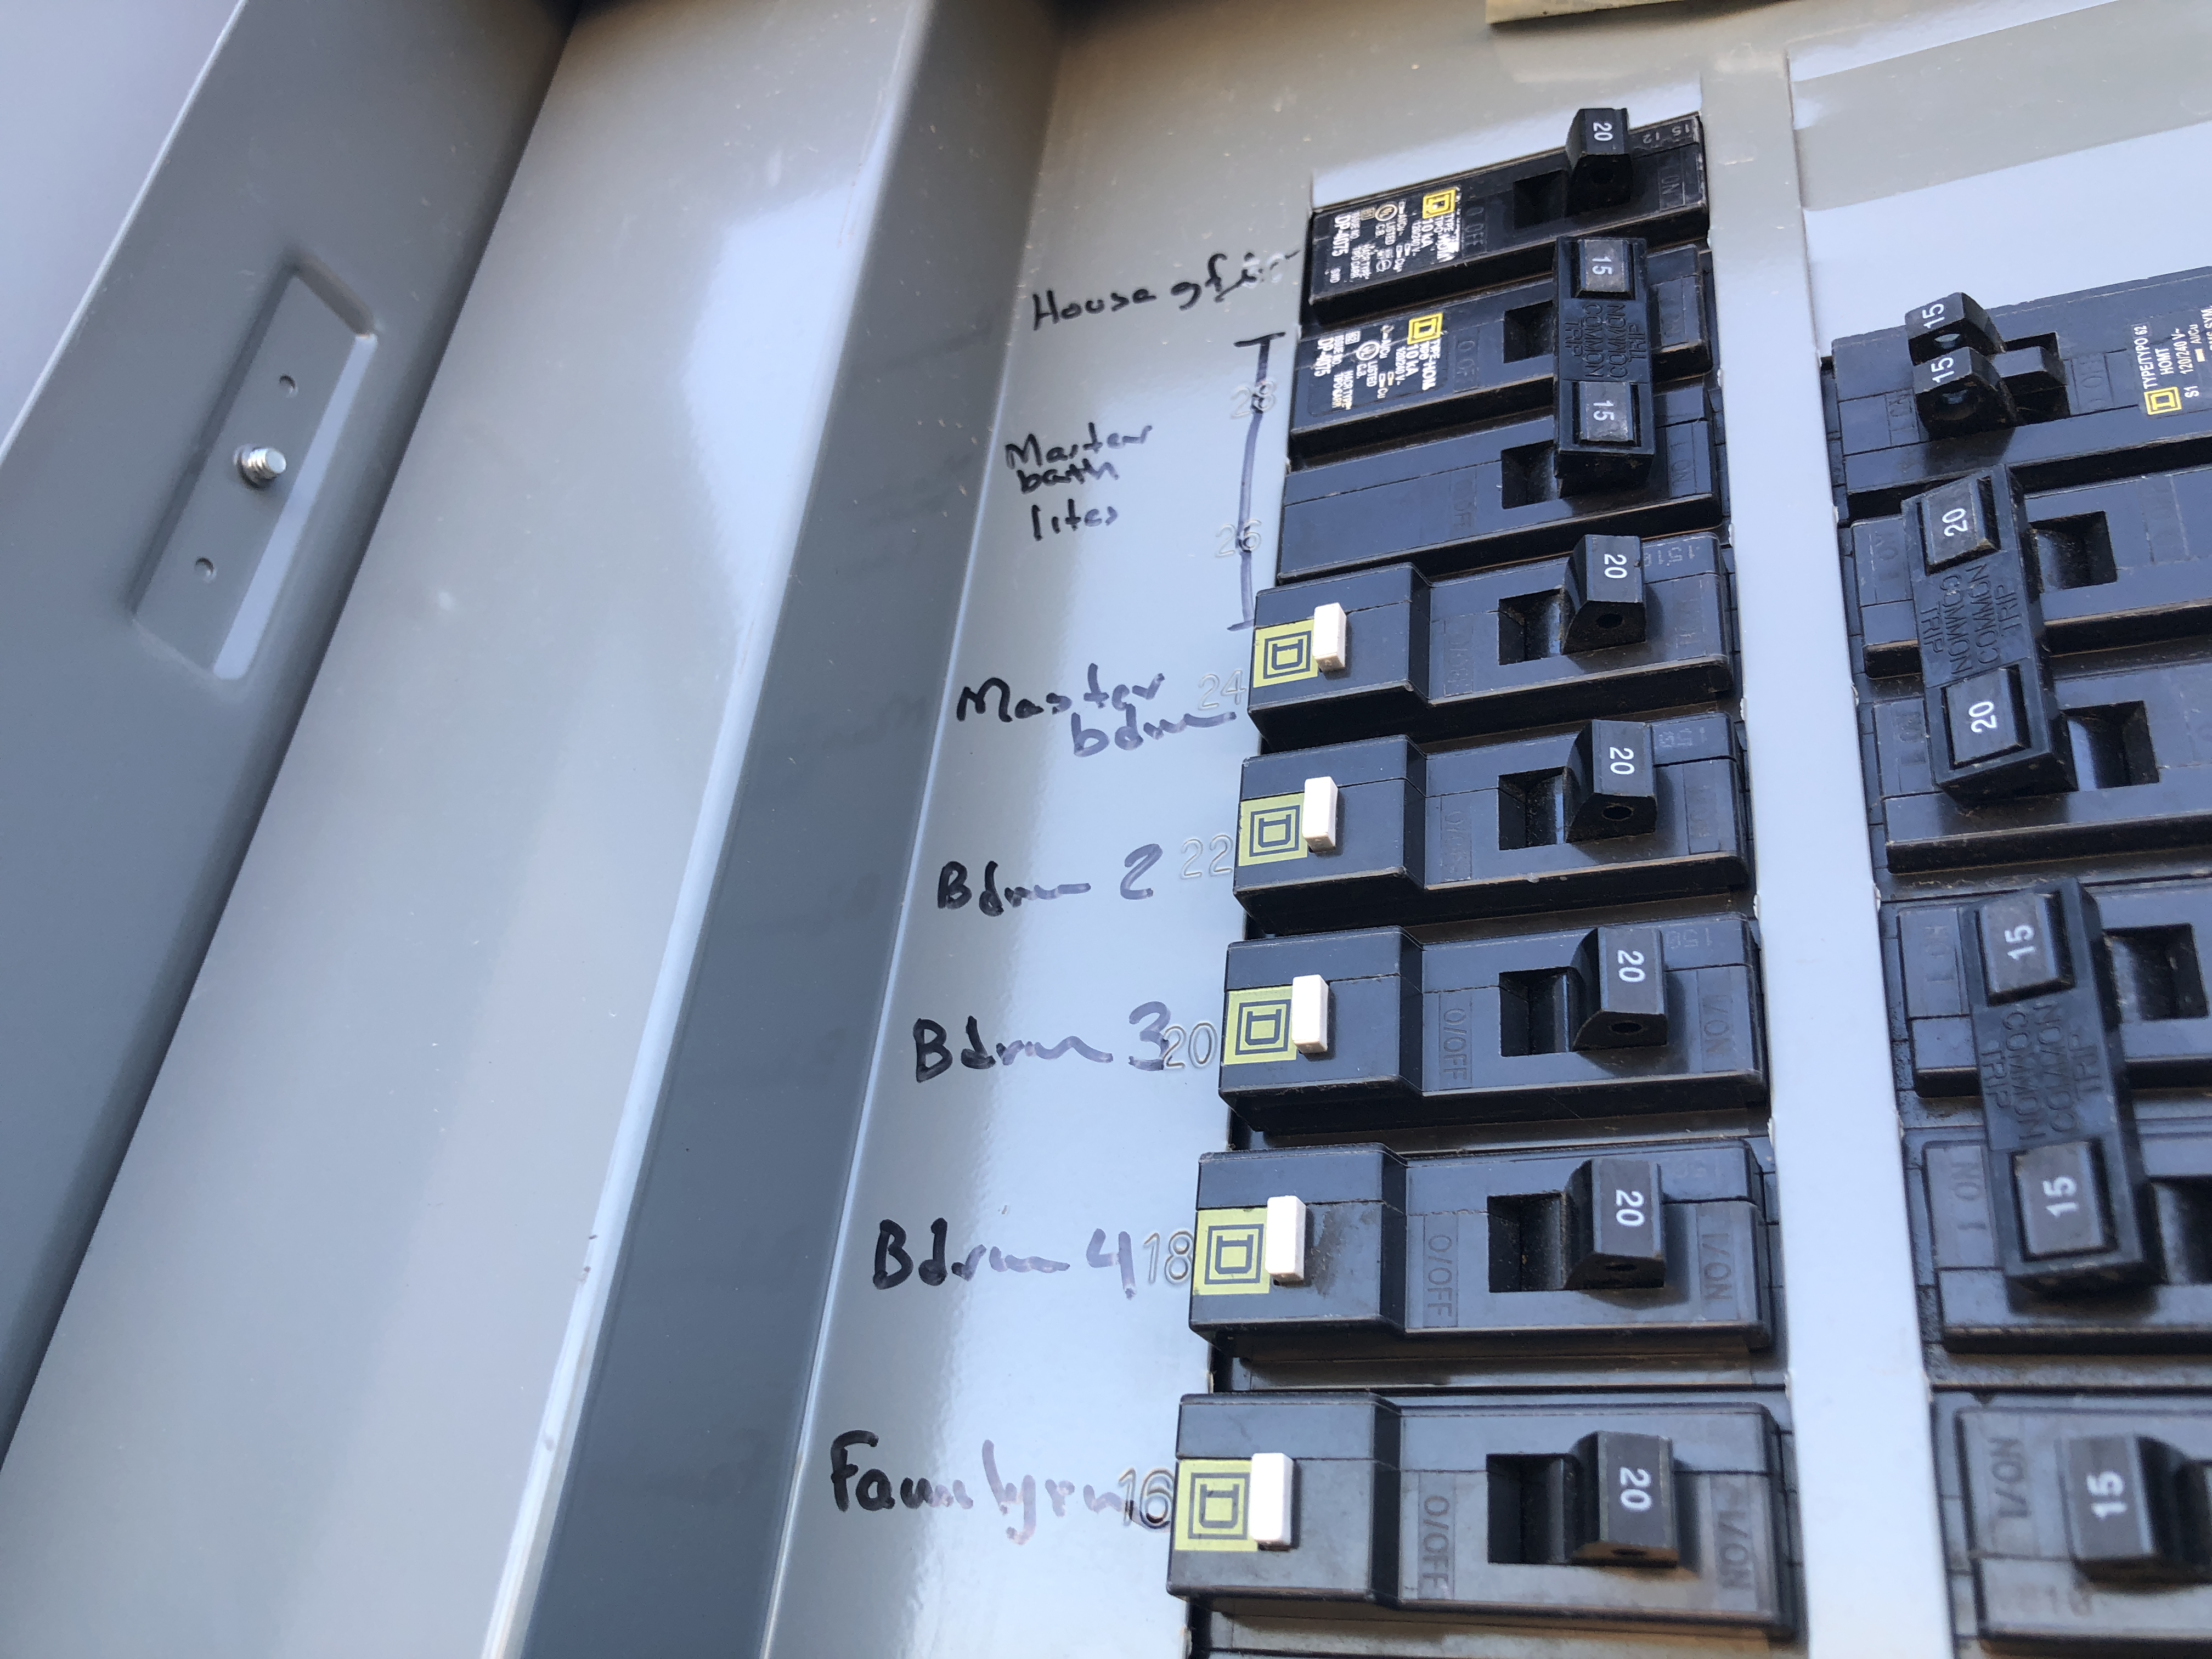 Electrical fuse box. Scott Electric provides service for all-aspects of electrical needs.